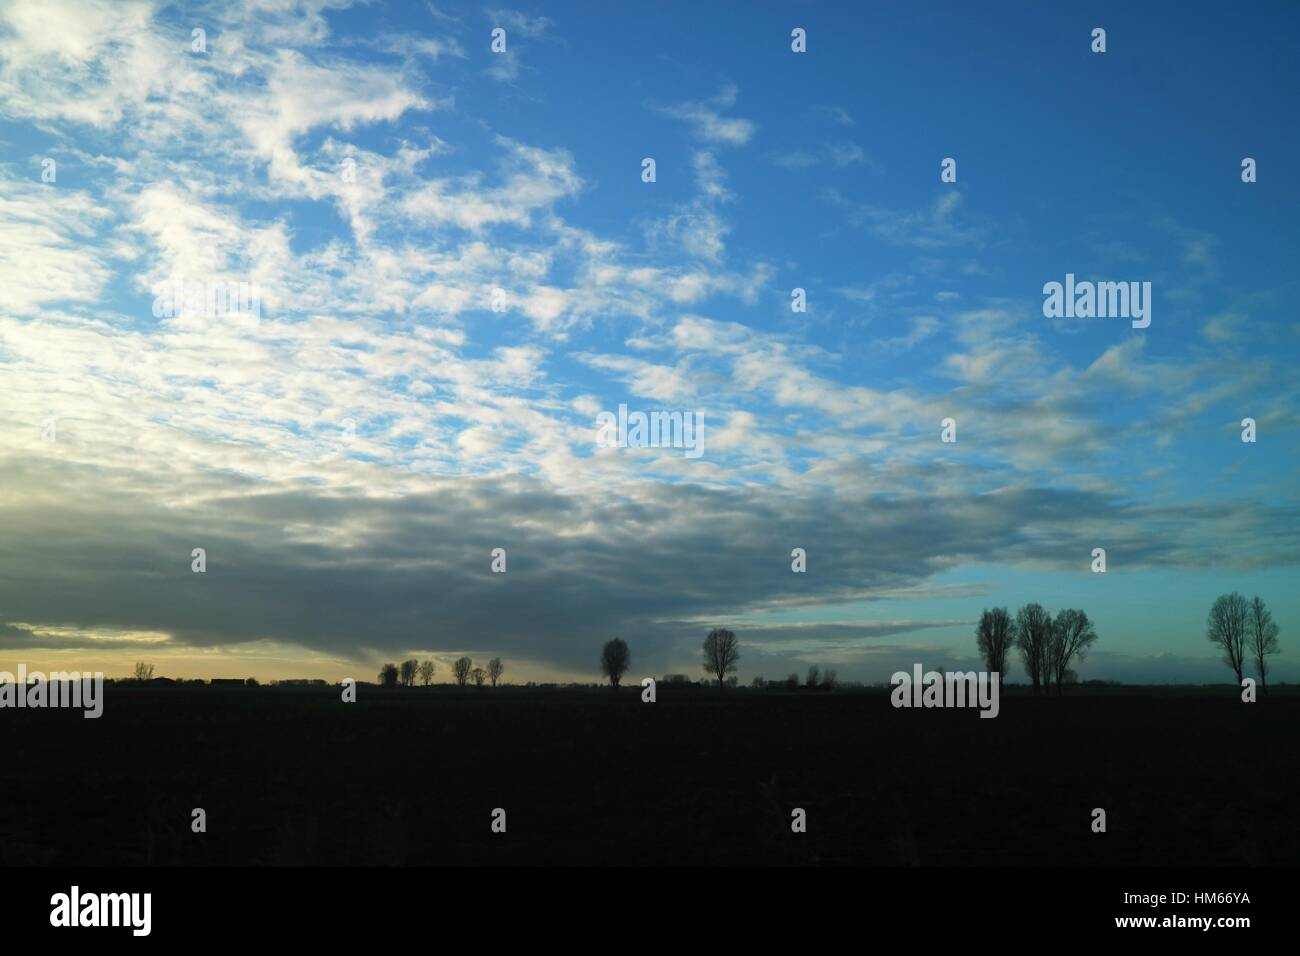 trees in the distance with a cloudy sky - Stock Image